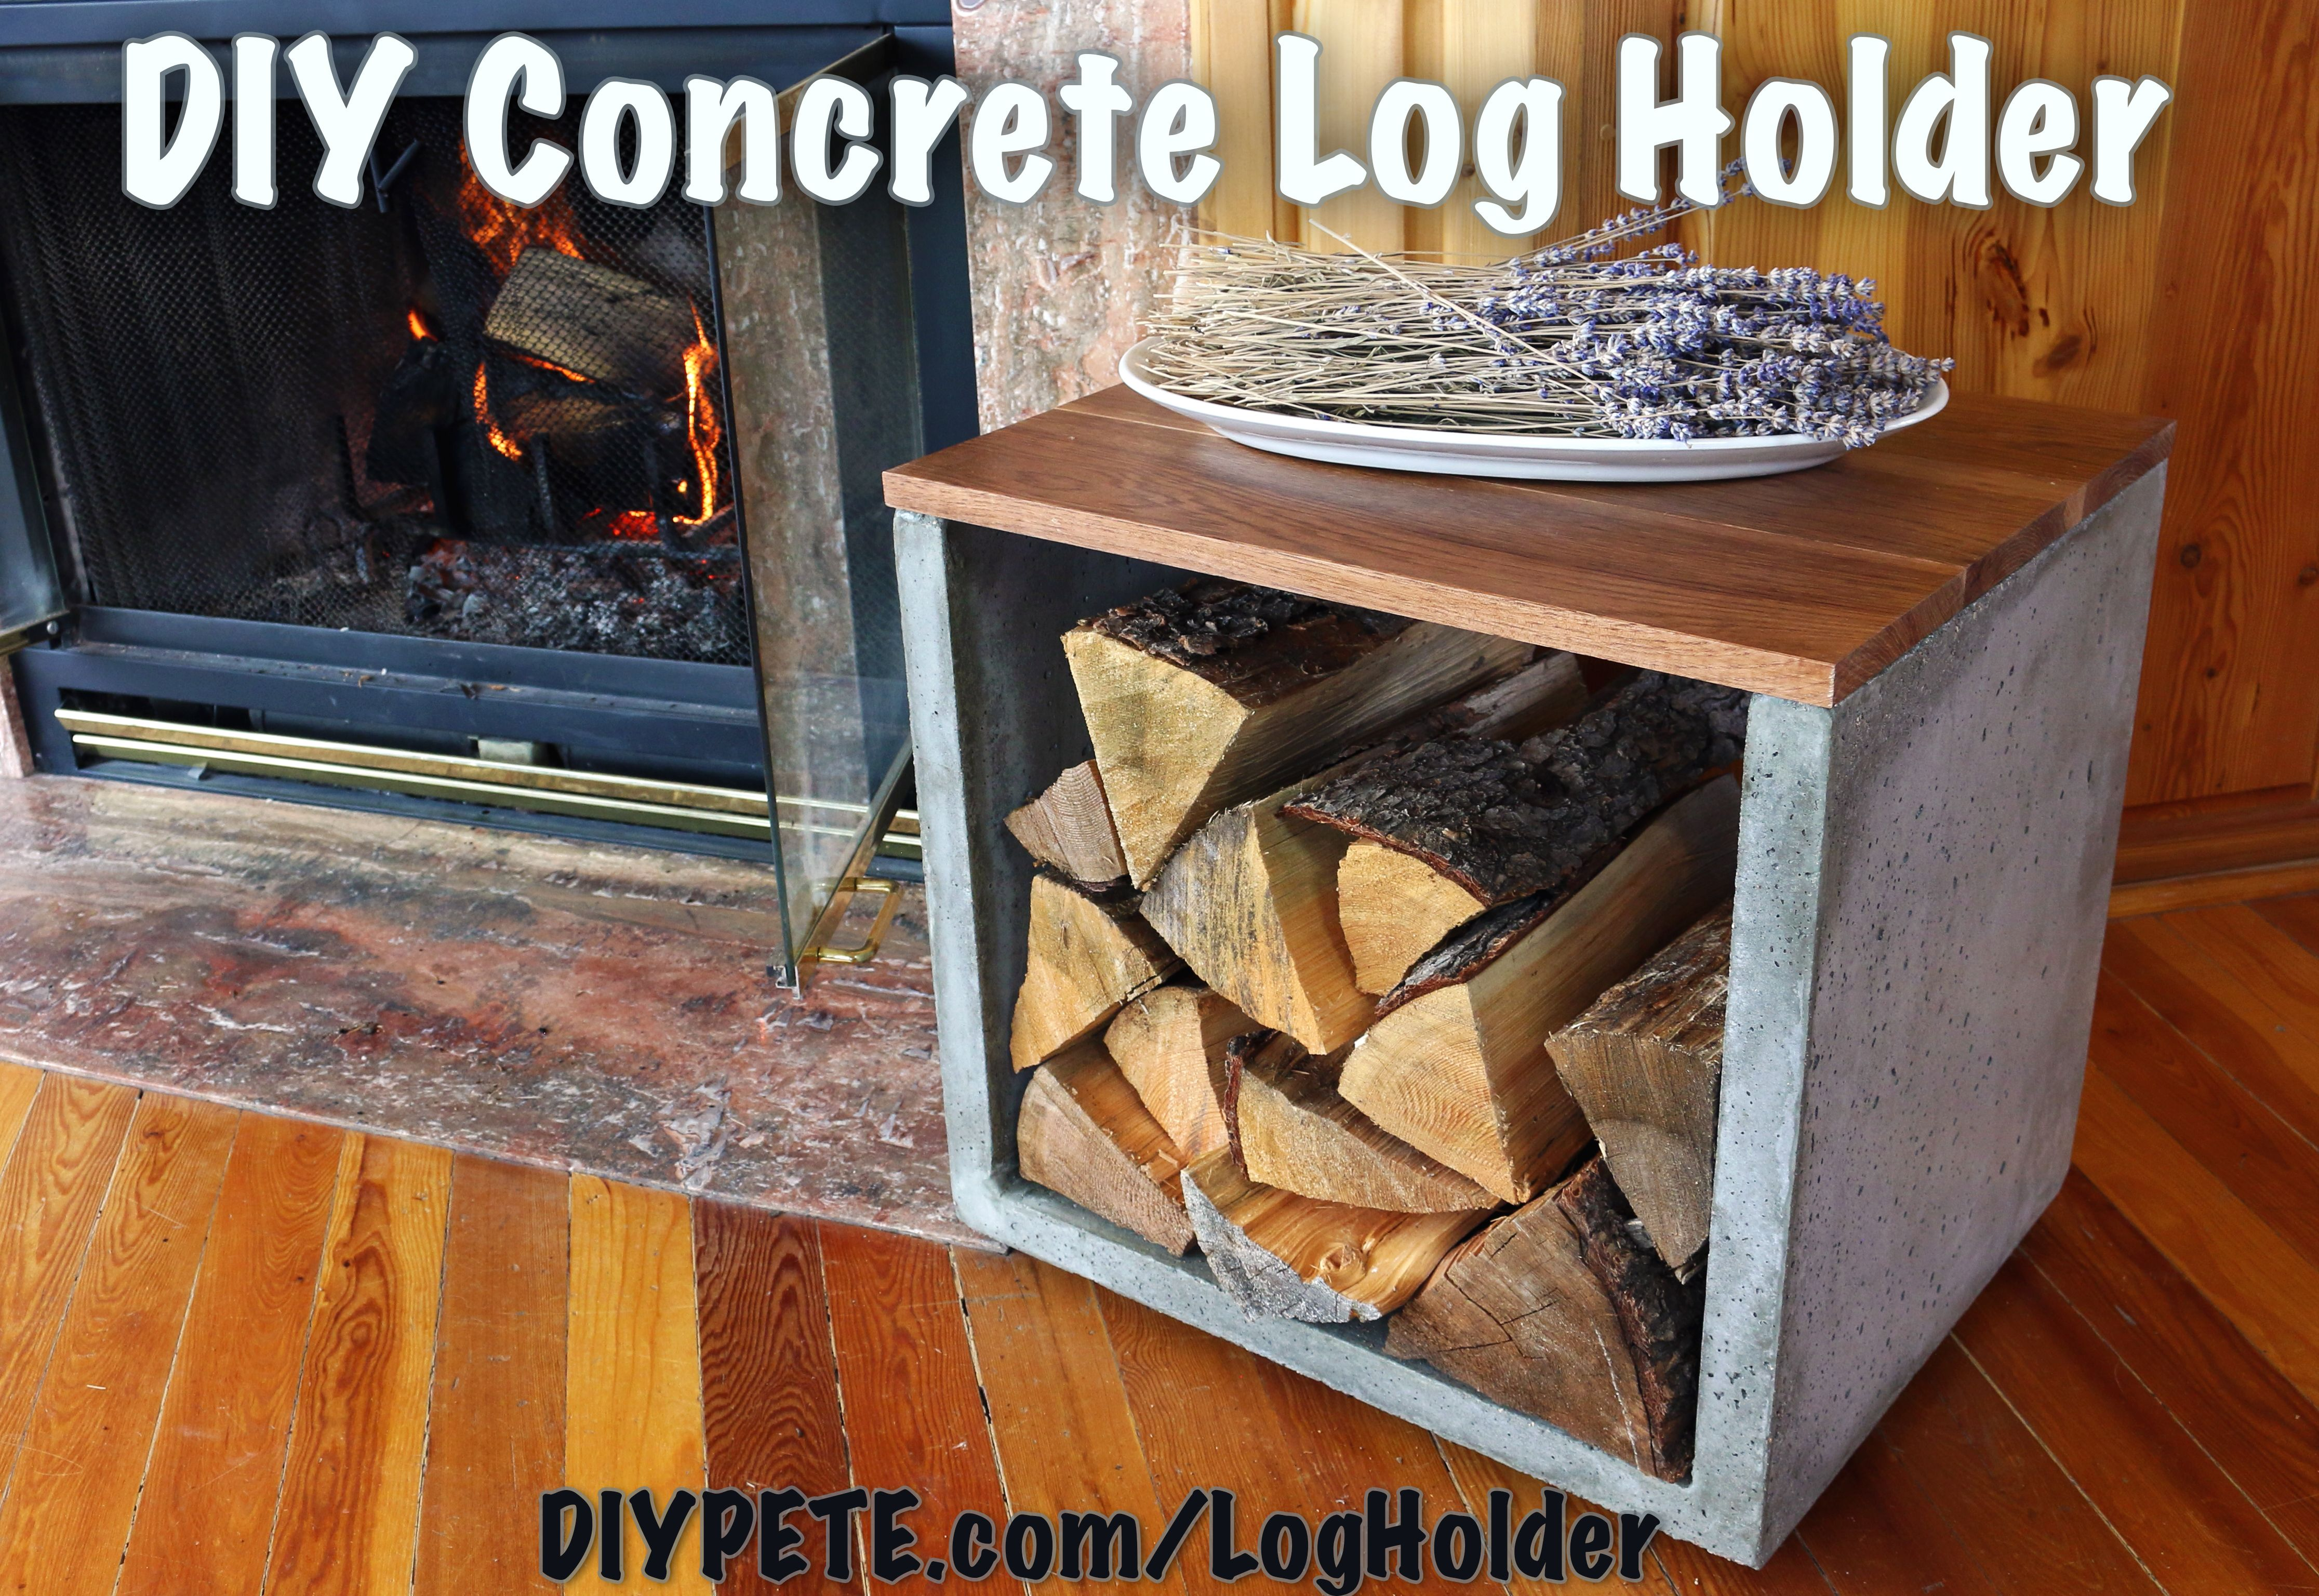 How To Make A Concrete Log Holder Scrapworklove